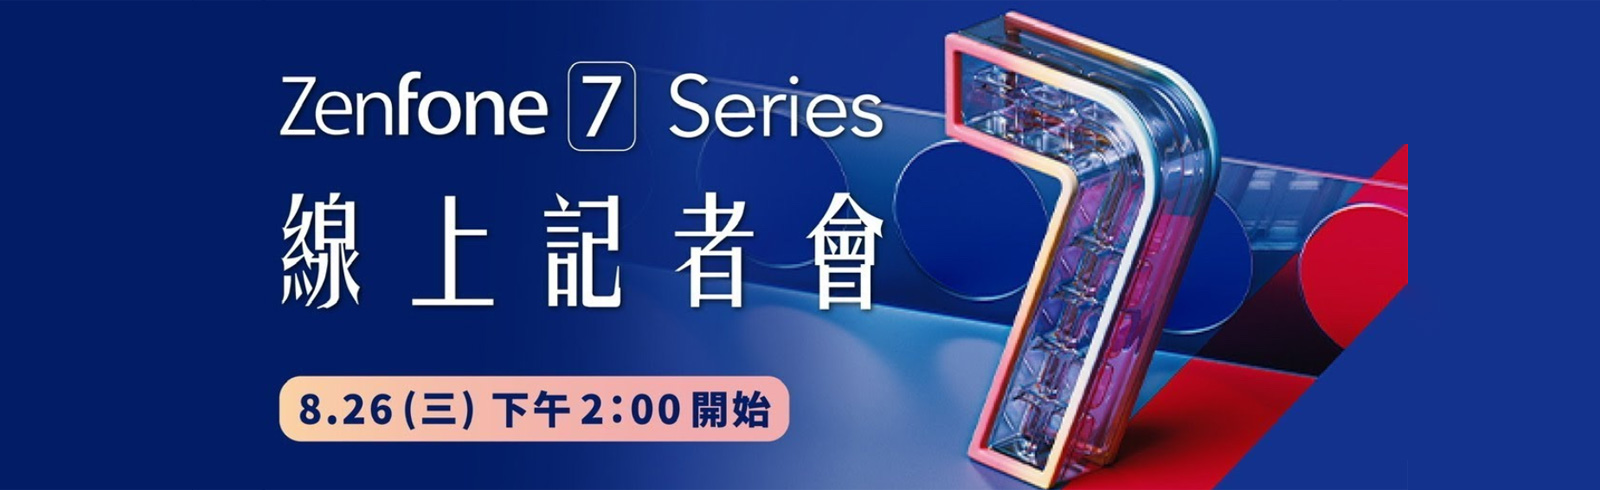 Asus Zenfone 7 series will be introduced on August 26th